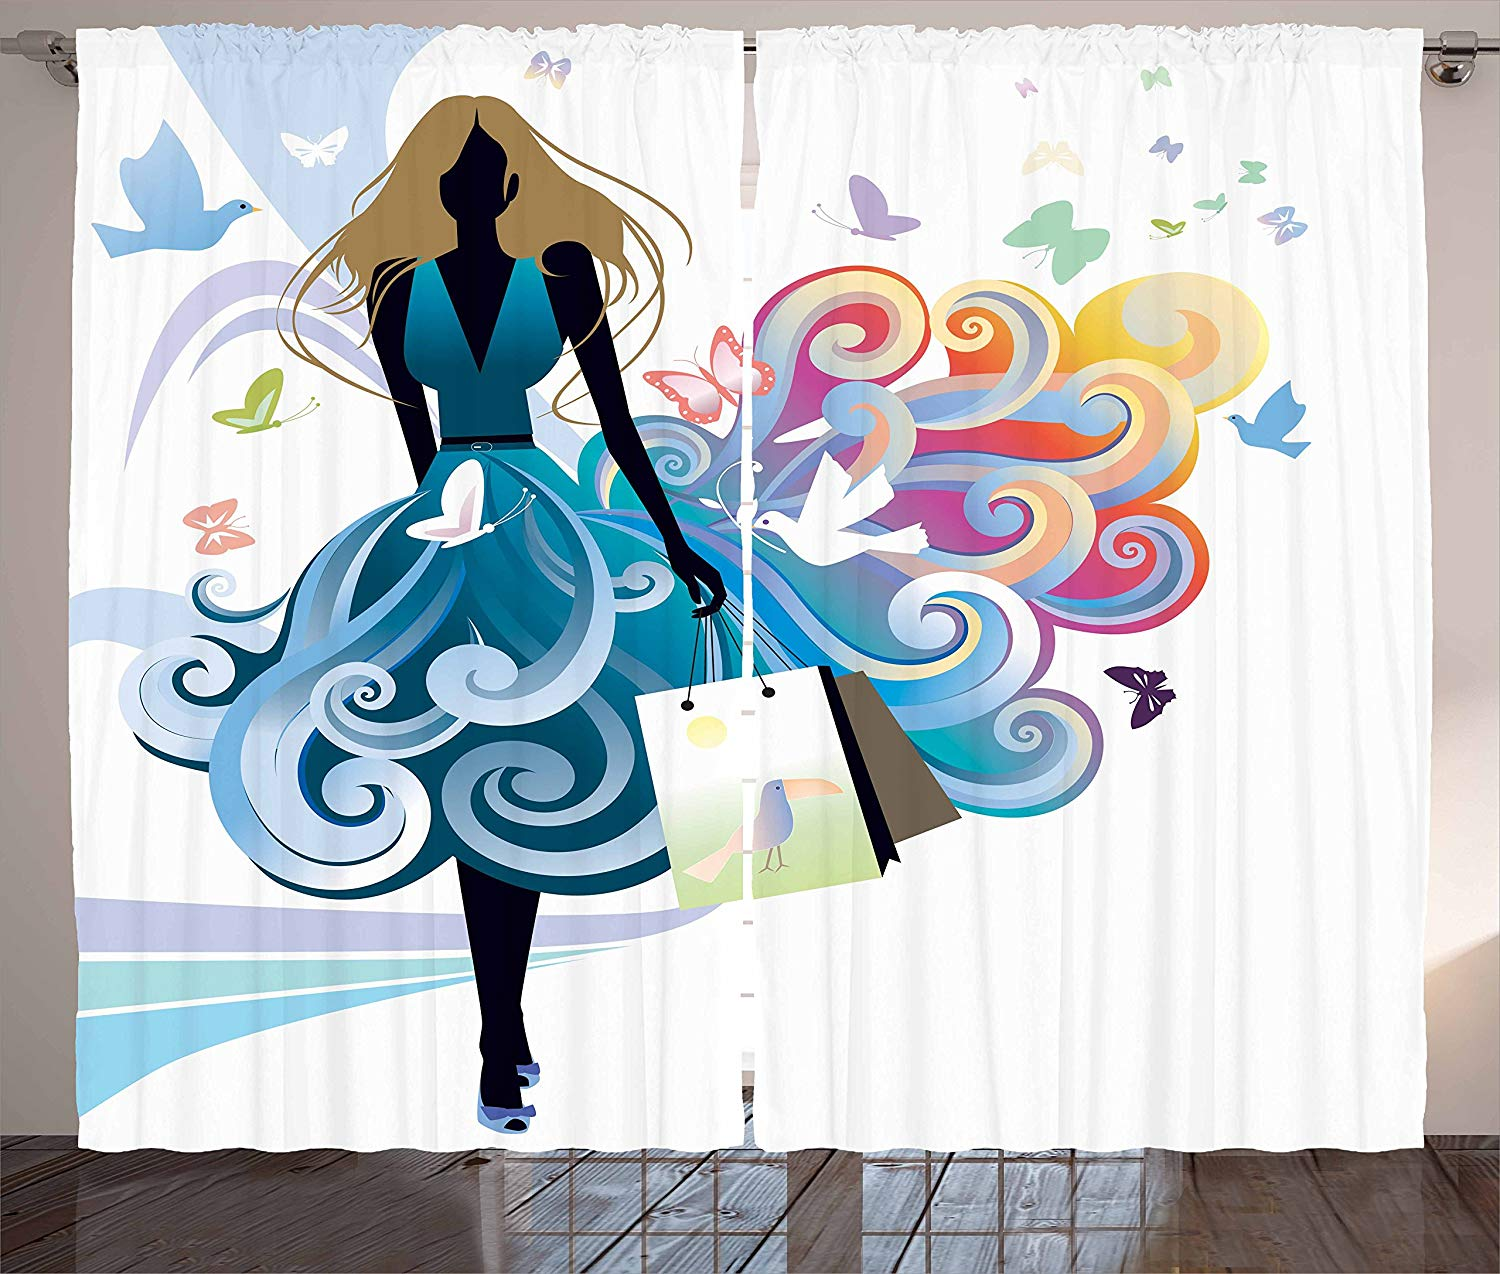 Contemporary Kitchen Curtains Young Woman Silhouette With Shopping Bags Fantasy Skirt Butterflies Fashion Window Decor Panel Curtains Aliexpress